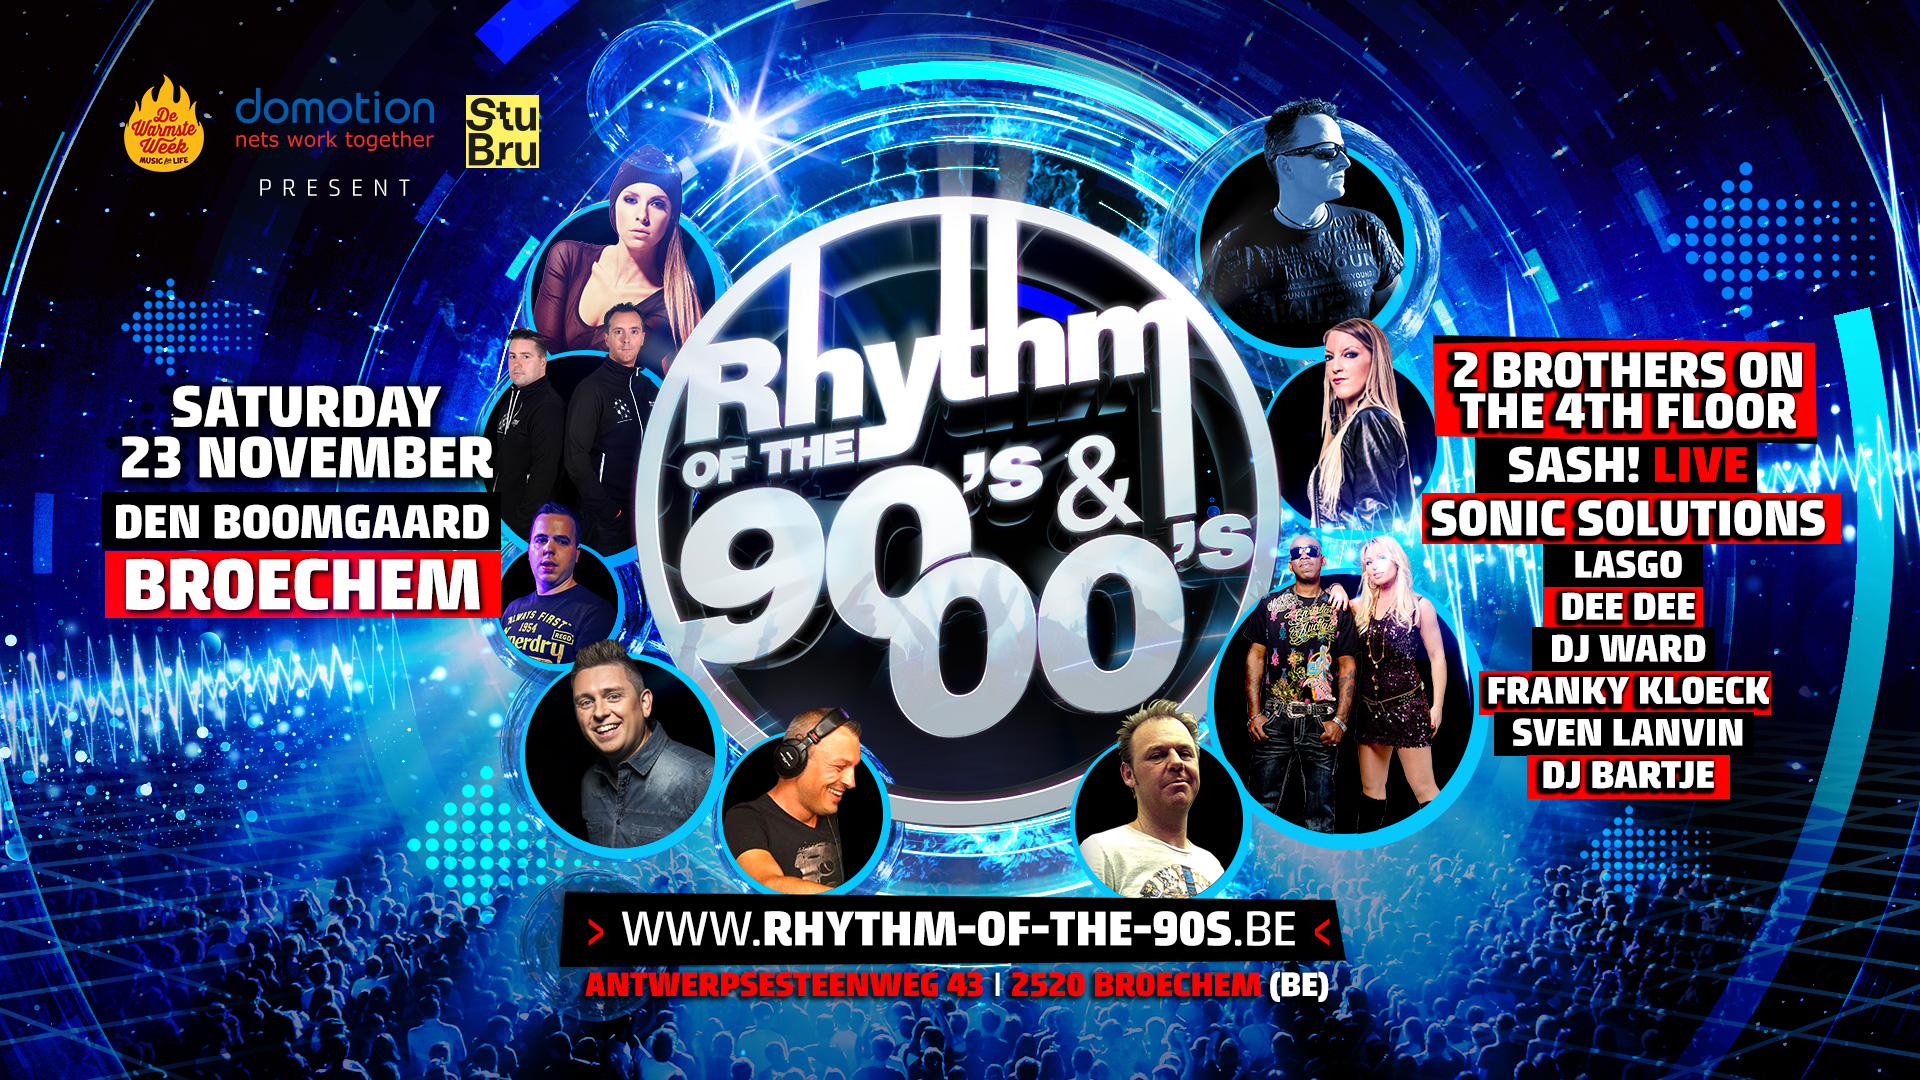 Rhythm of the 90